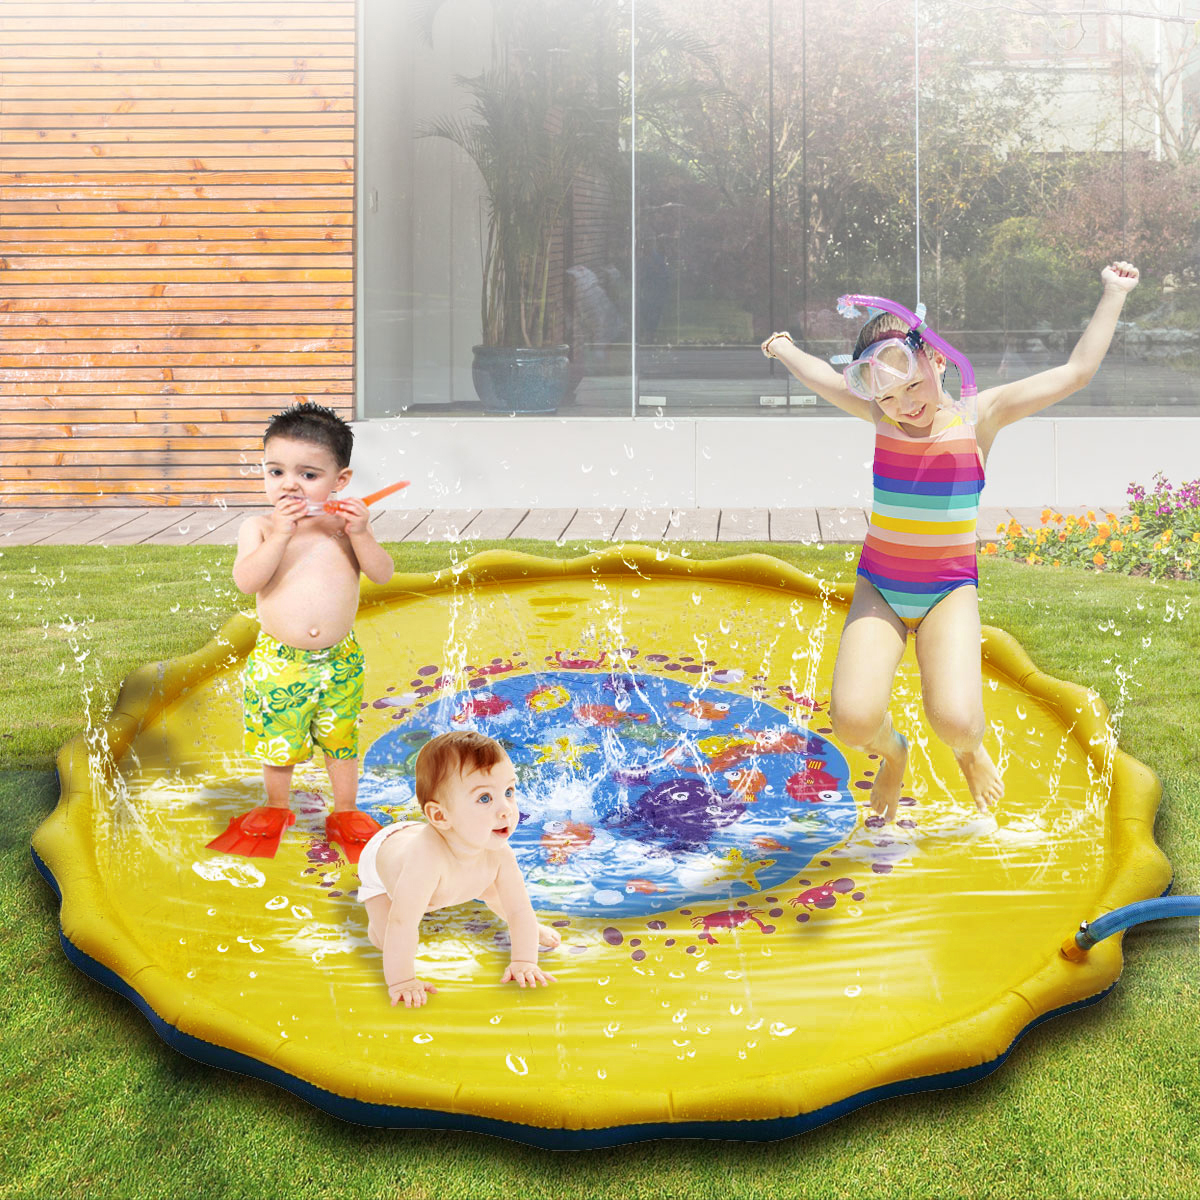 Activity & Gear Smart Baby Ocean Ball Pool Household Inflatable Sand Indoor Play Pool Swimming Pool Children Summer Play Water Toy Outside Toys